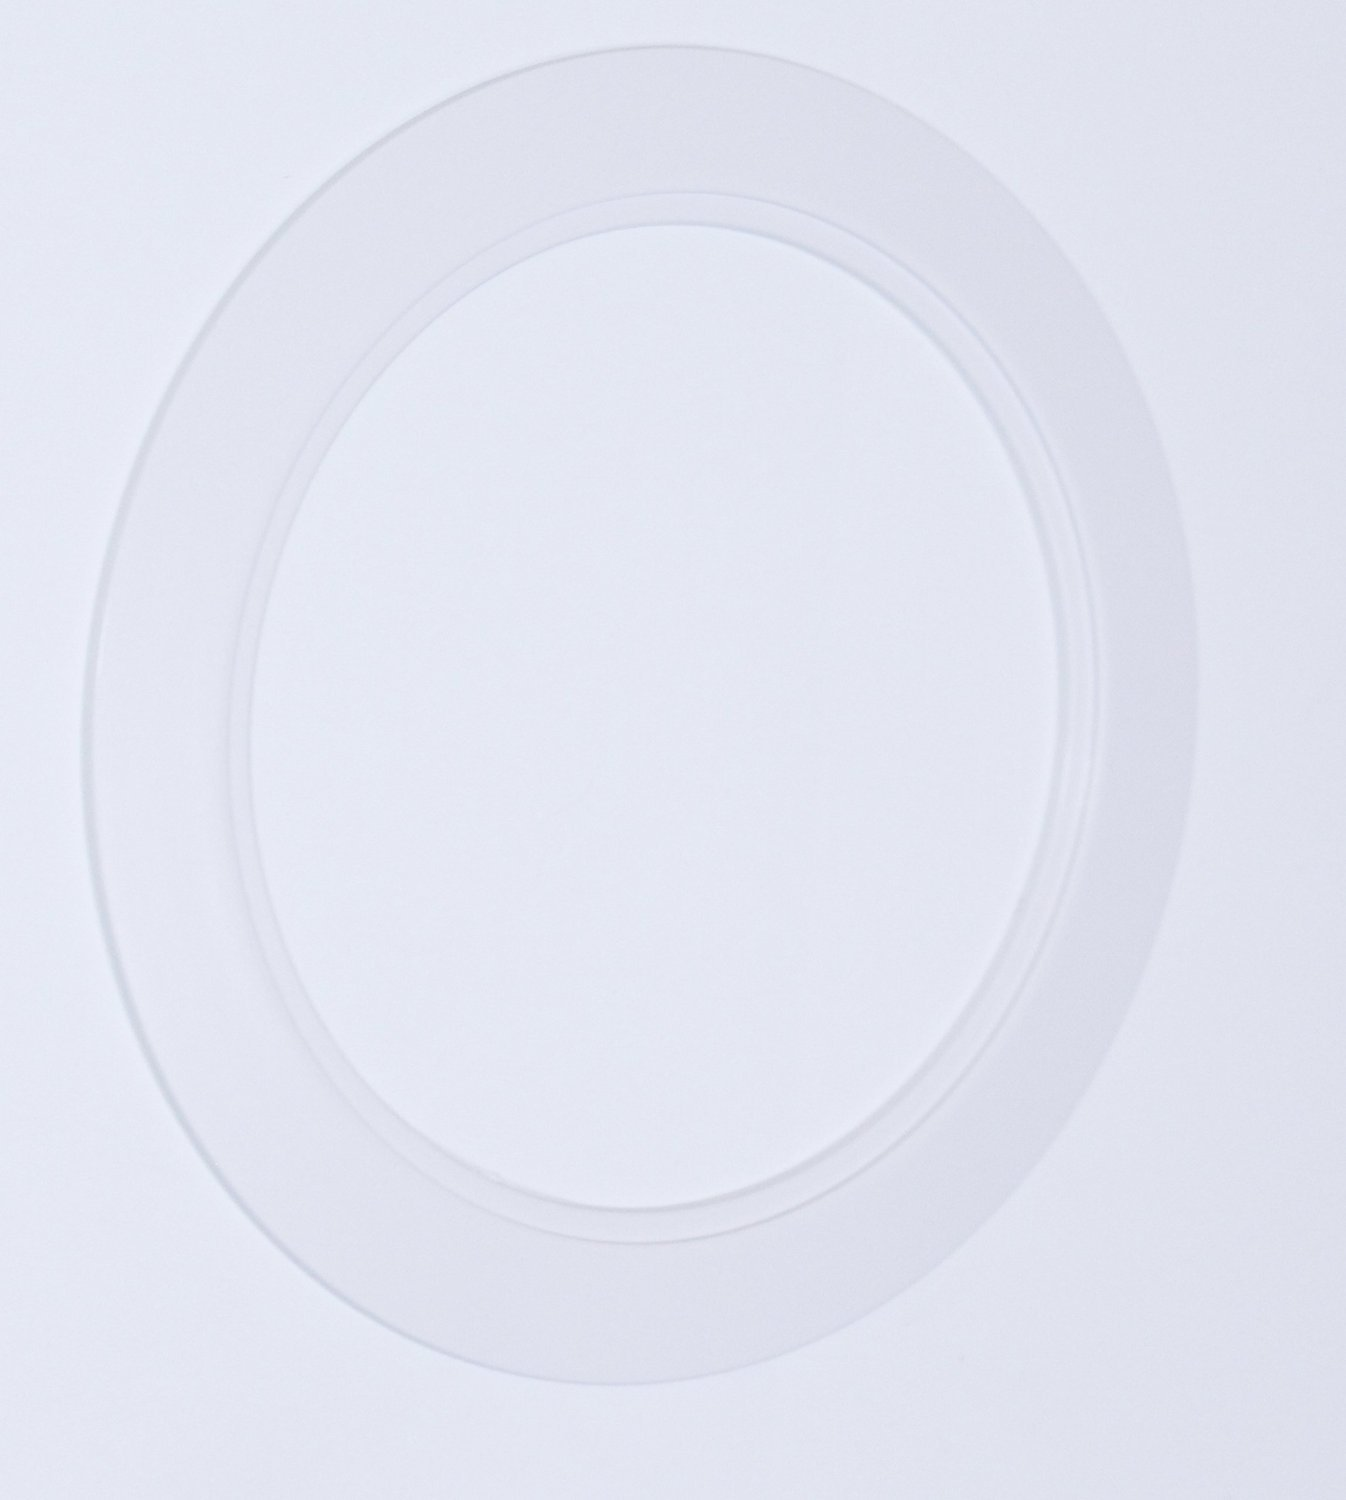 25 Pack-White Light Trim Ring Recessed Can 6'' Inch Over Size Oversized Lighting Fixture